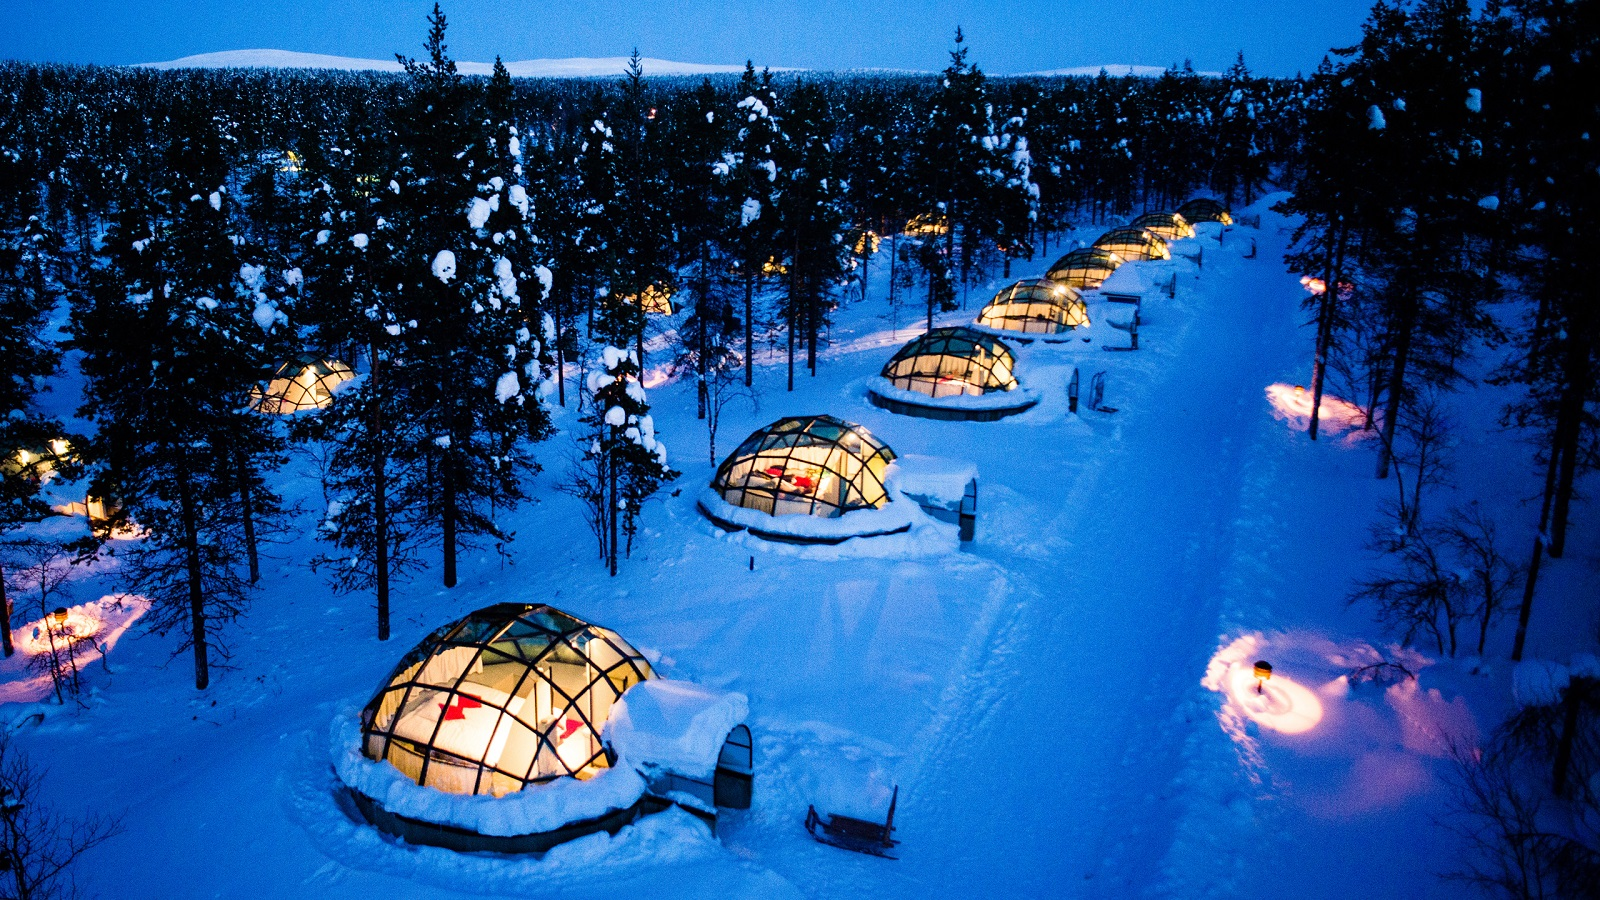 Coolest place to stay and see the Northern Lights